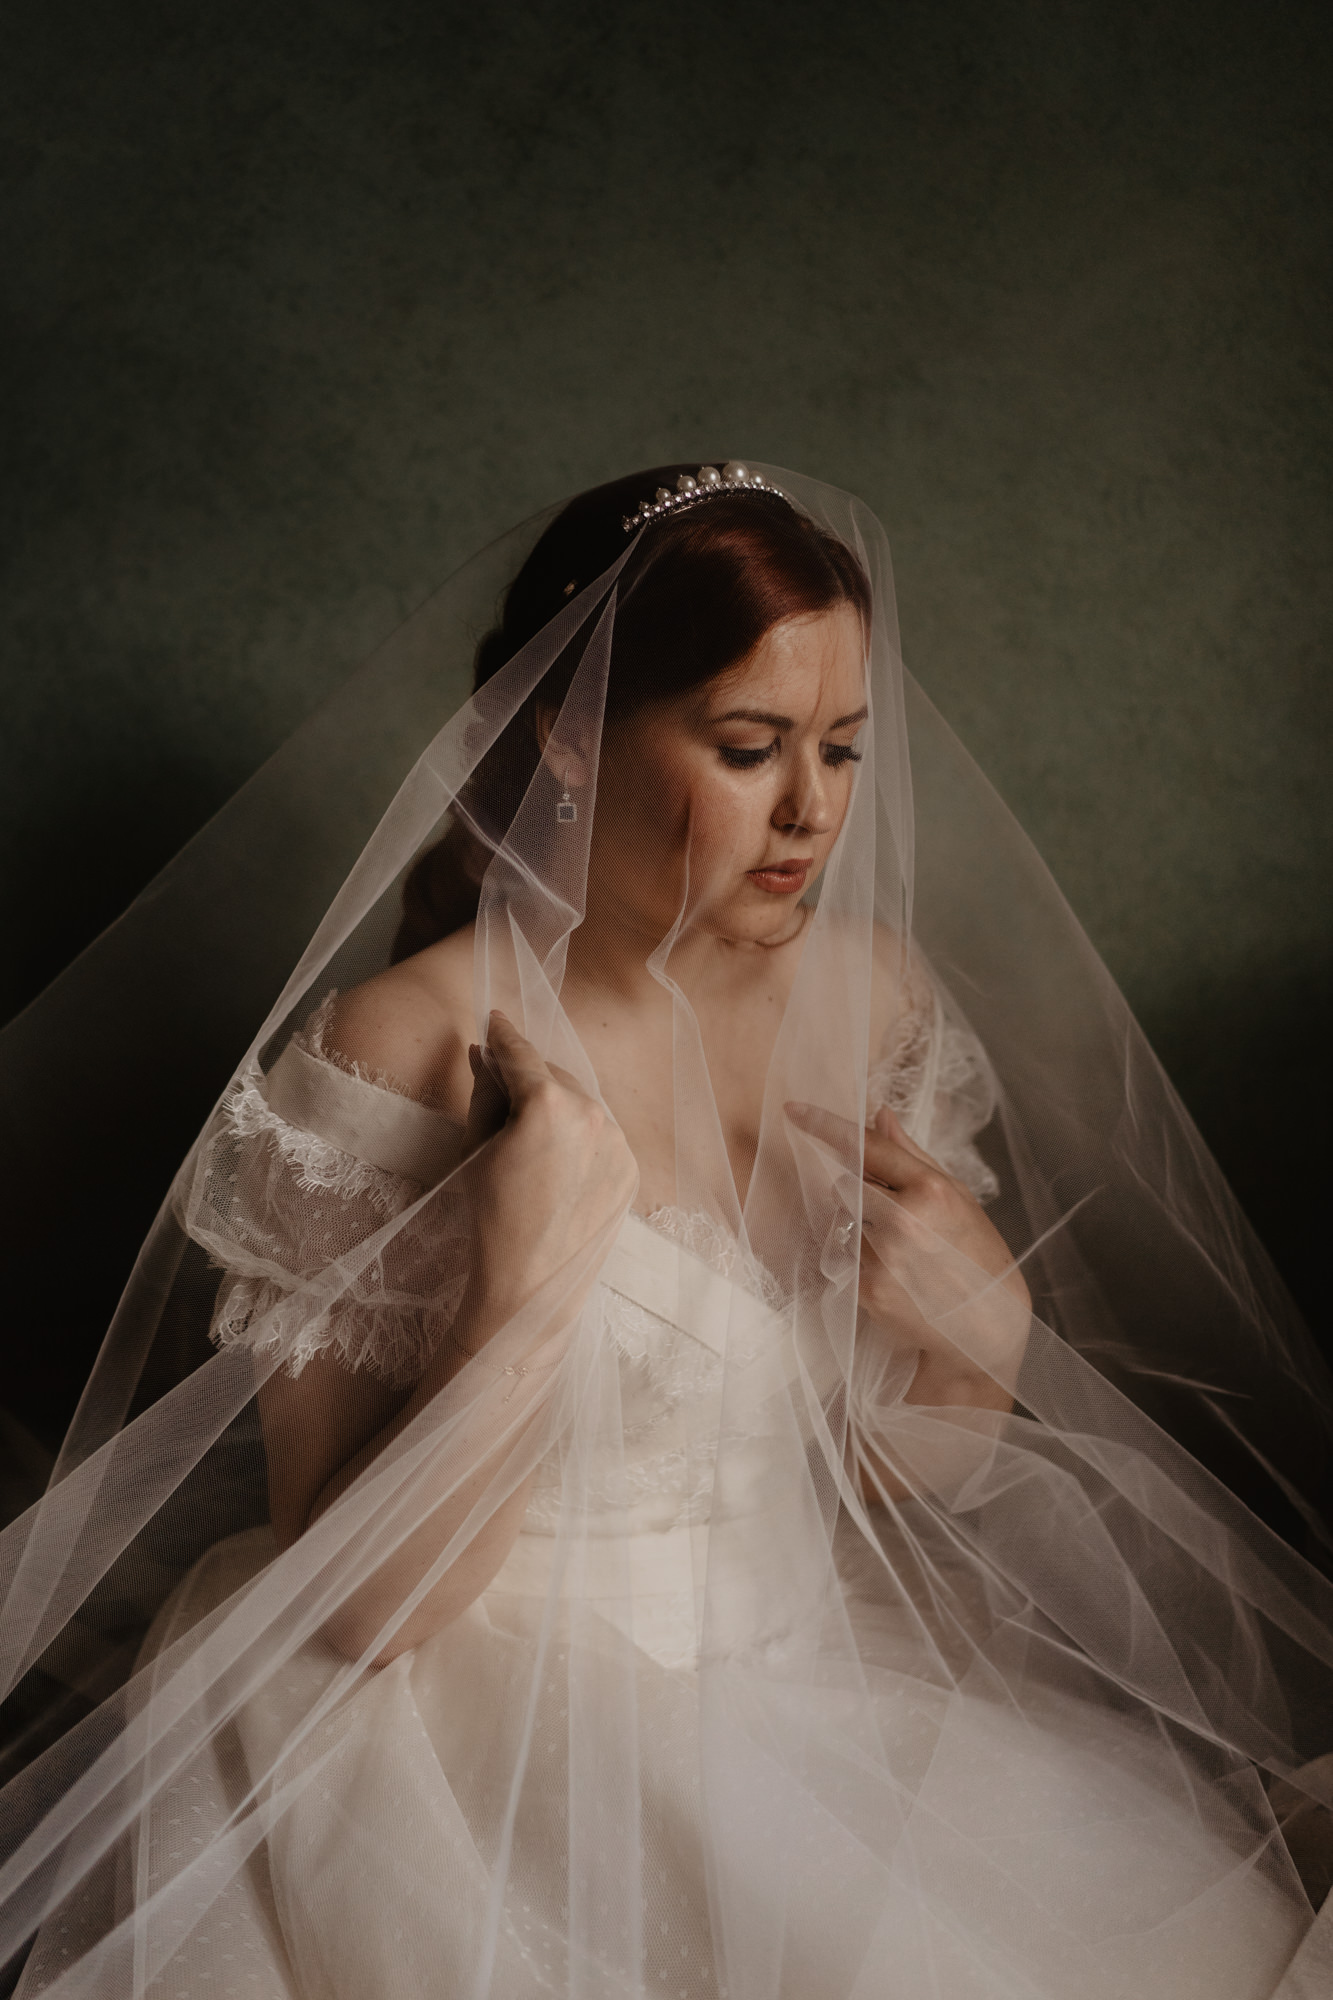 Rembrandt light portrait of red-haired bride with veil photo by David Bastianoni, Italy wedding photographer